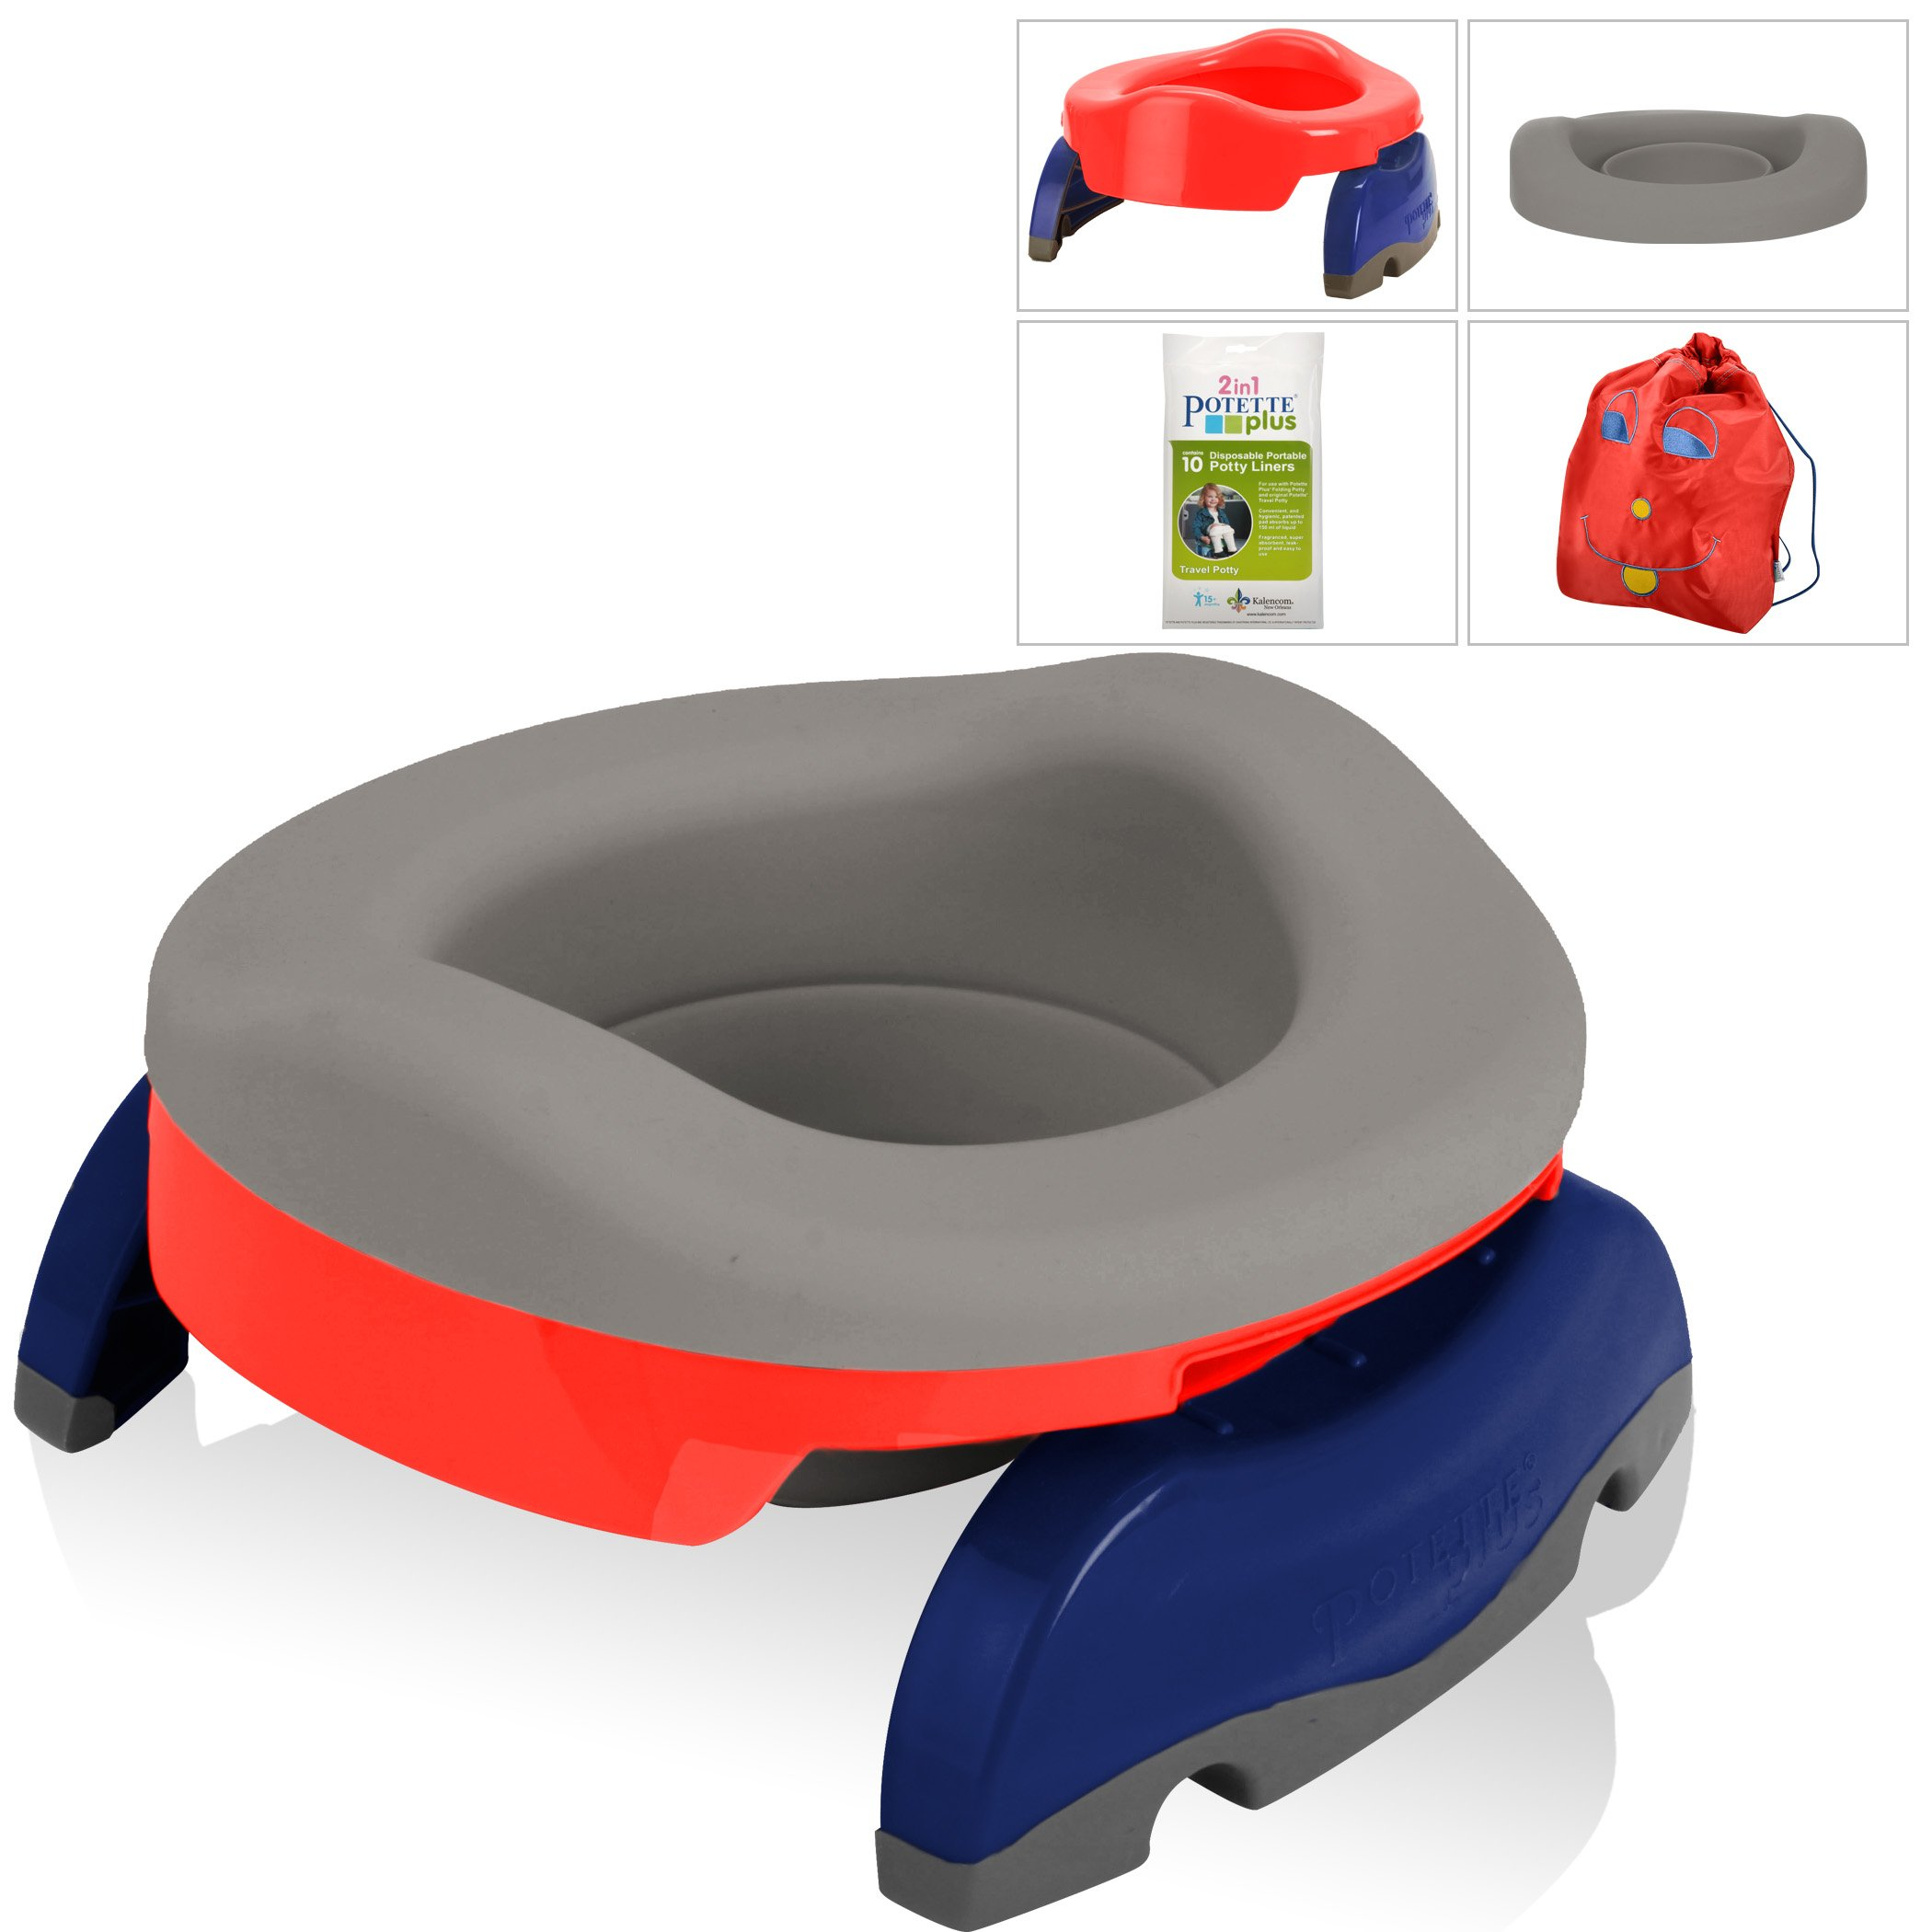 Kalencom Potette Potty Value Bundle: Potette Plus 2-in-1 Travel Potty | Home-Use Collapsible Reusable Potty Liner | 10-Pack Disposable Potty Liners | Drawstring Carry Bag (Red/Gray)